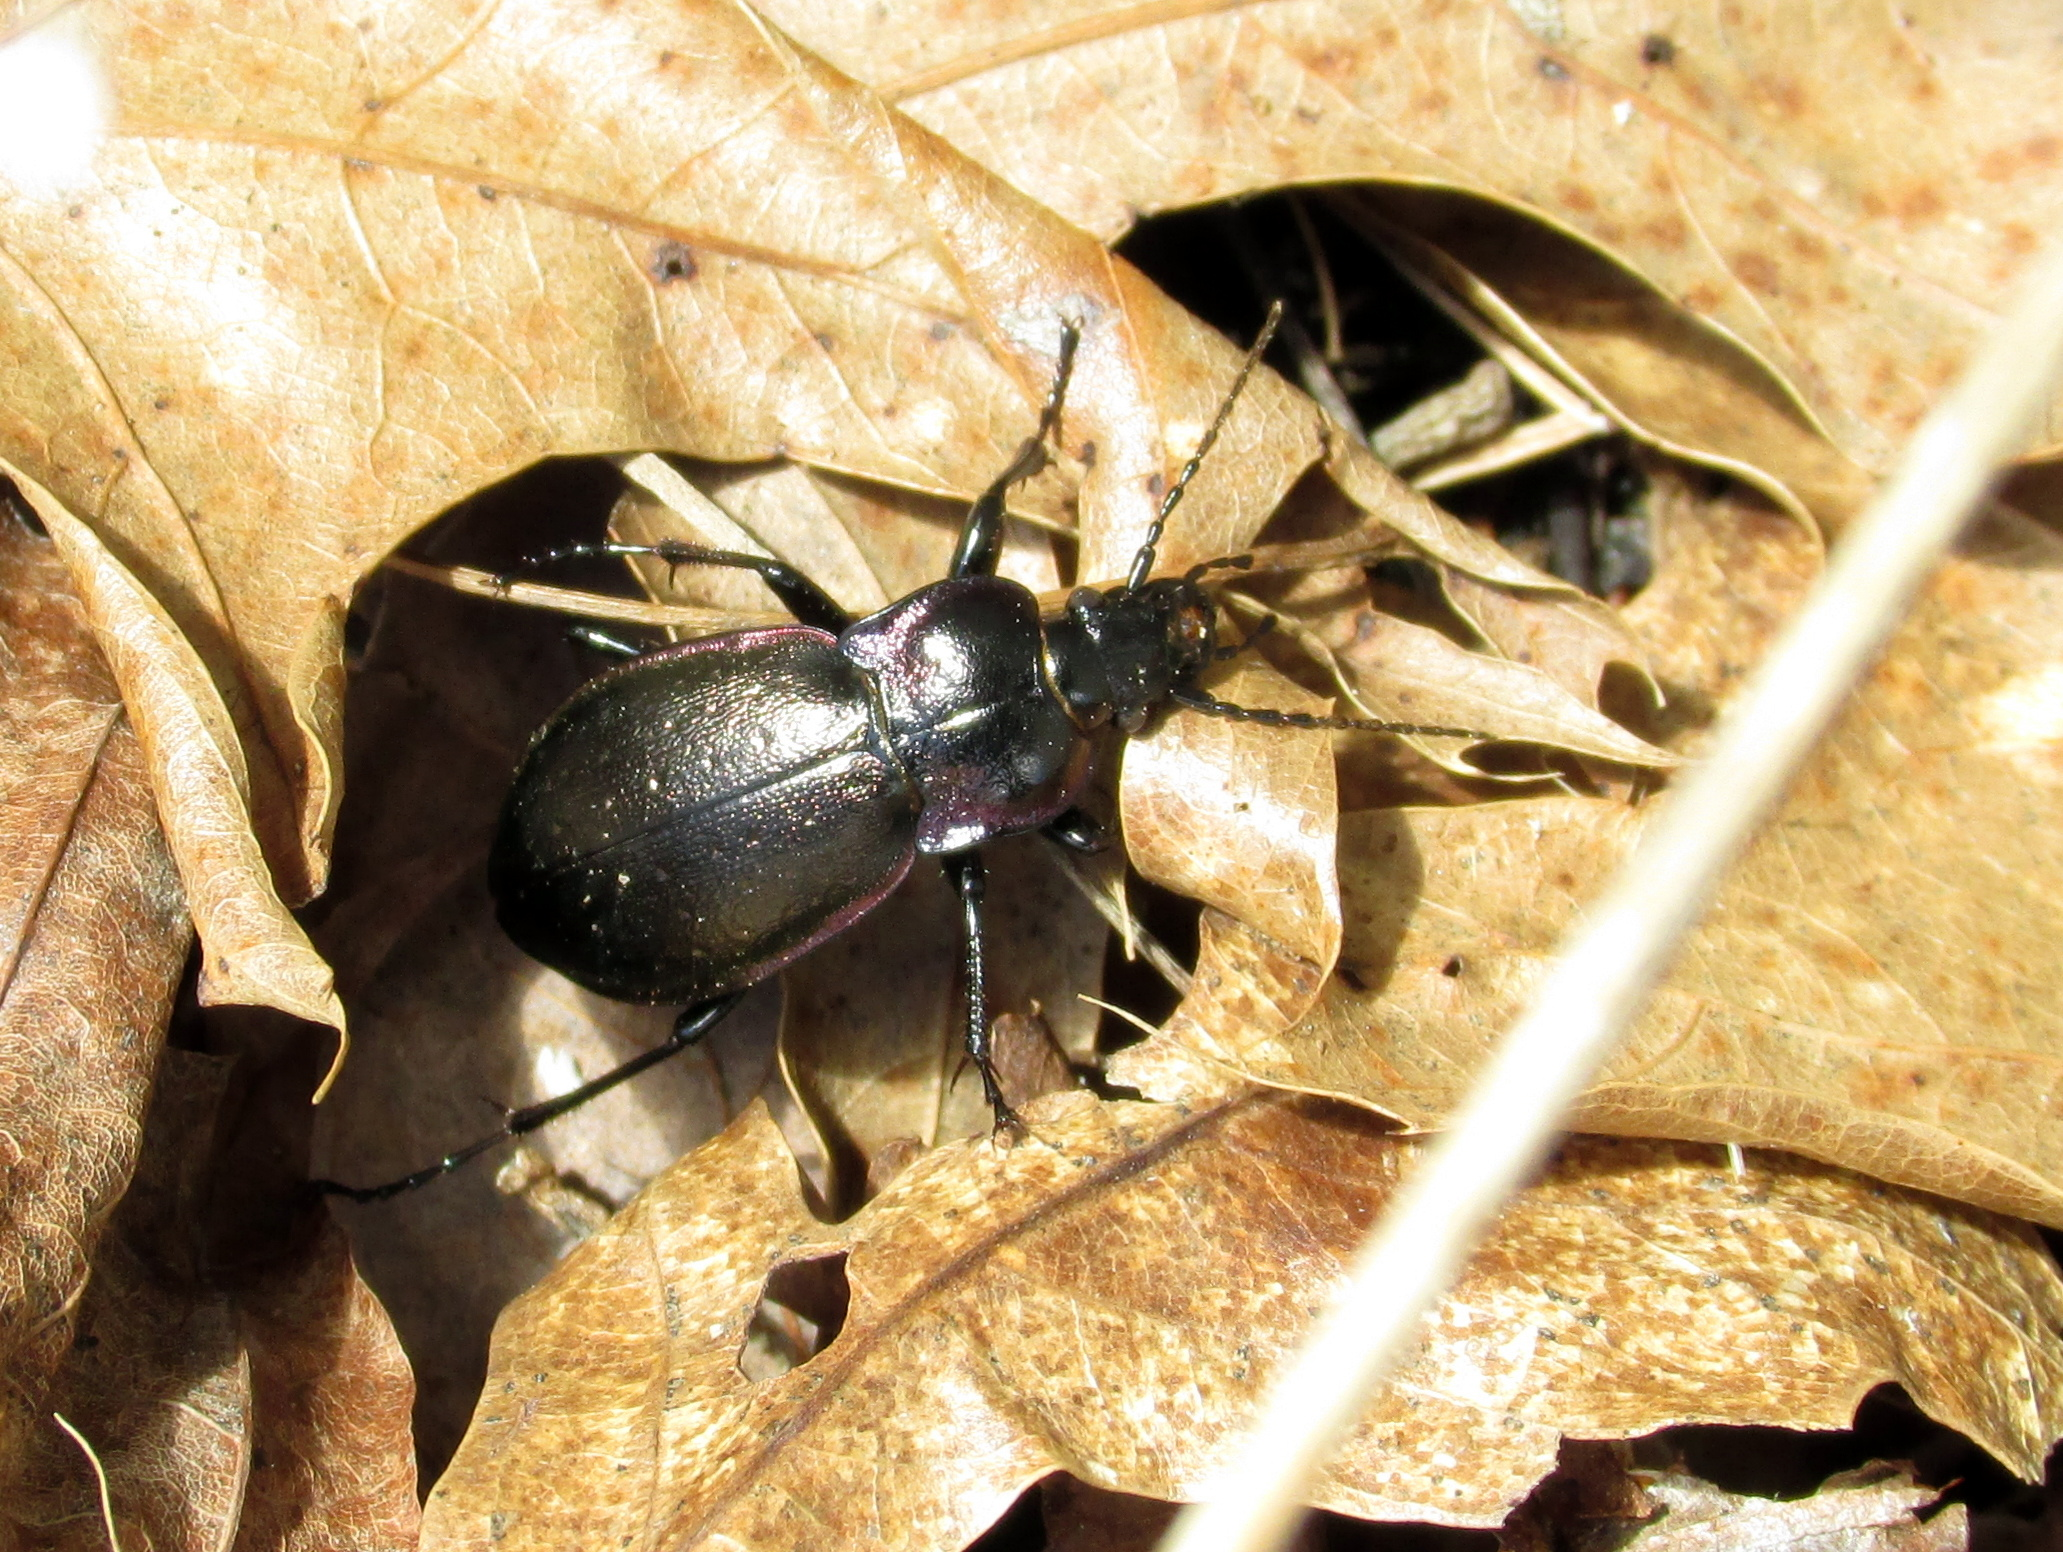 shiny bug in leaves and among weeds